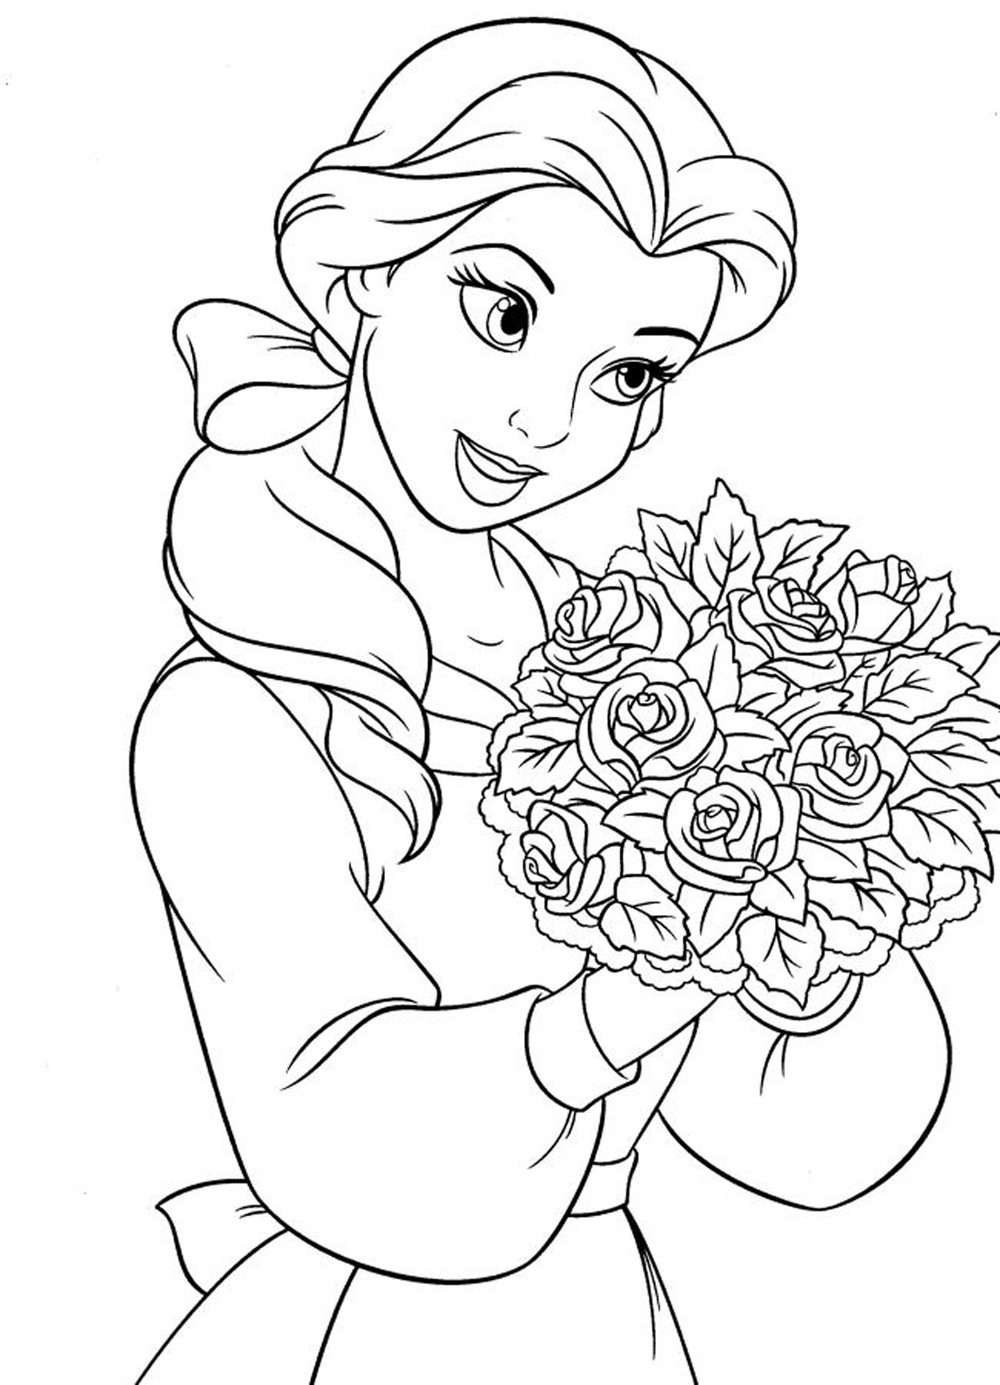 free online coloring pages disney free printable disney princess coloring pages for kids